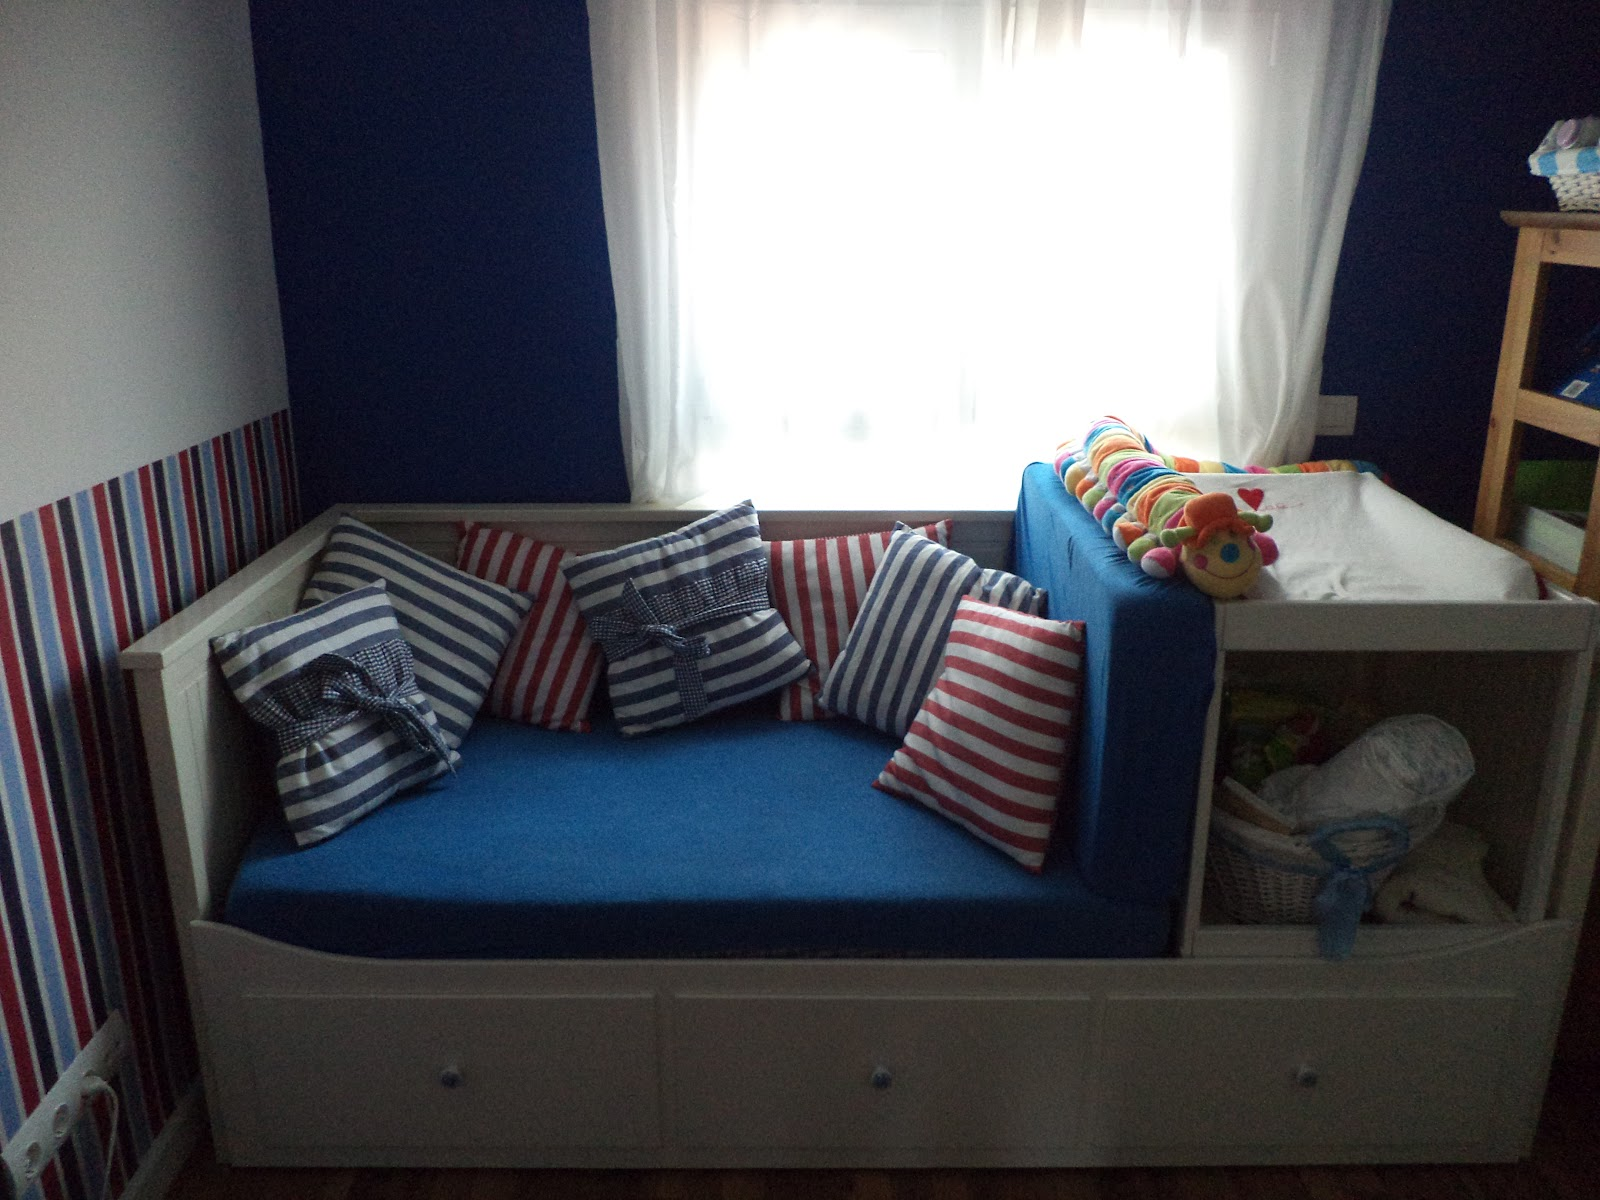 10 awesome ikea hacks for a kid s room. Black Bedroom Furniture Sets. Home Design Ideas